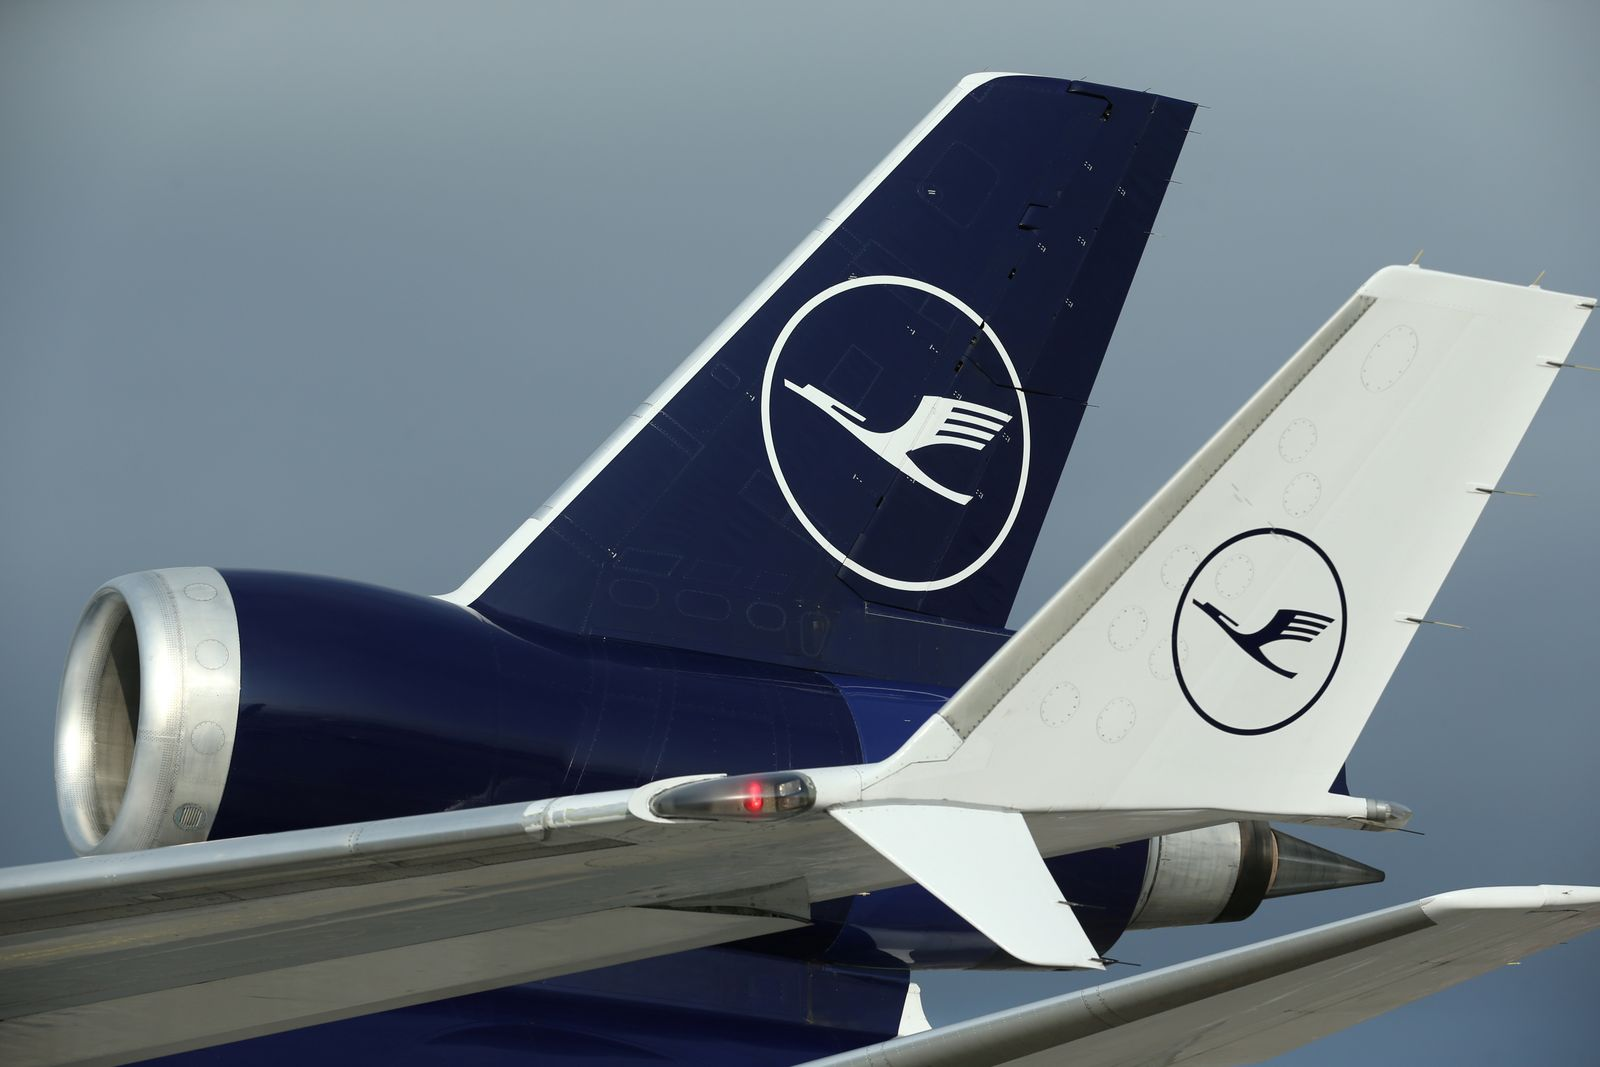 A Lufthansa McDonnell Douglas MD-11 cargo aircraft is pictured at Frankfurt airport